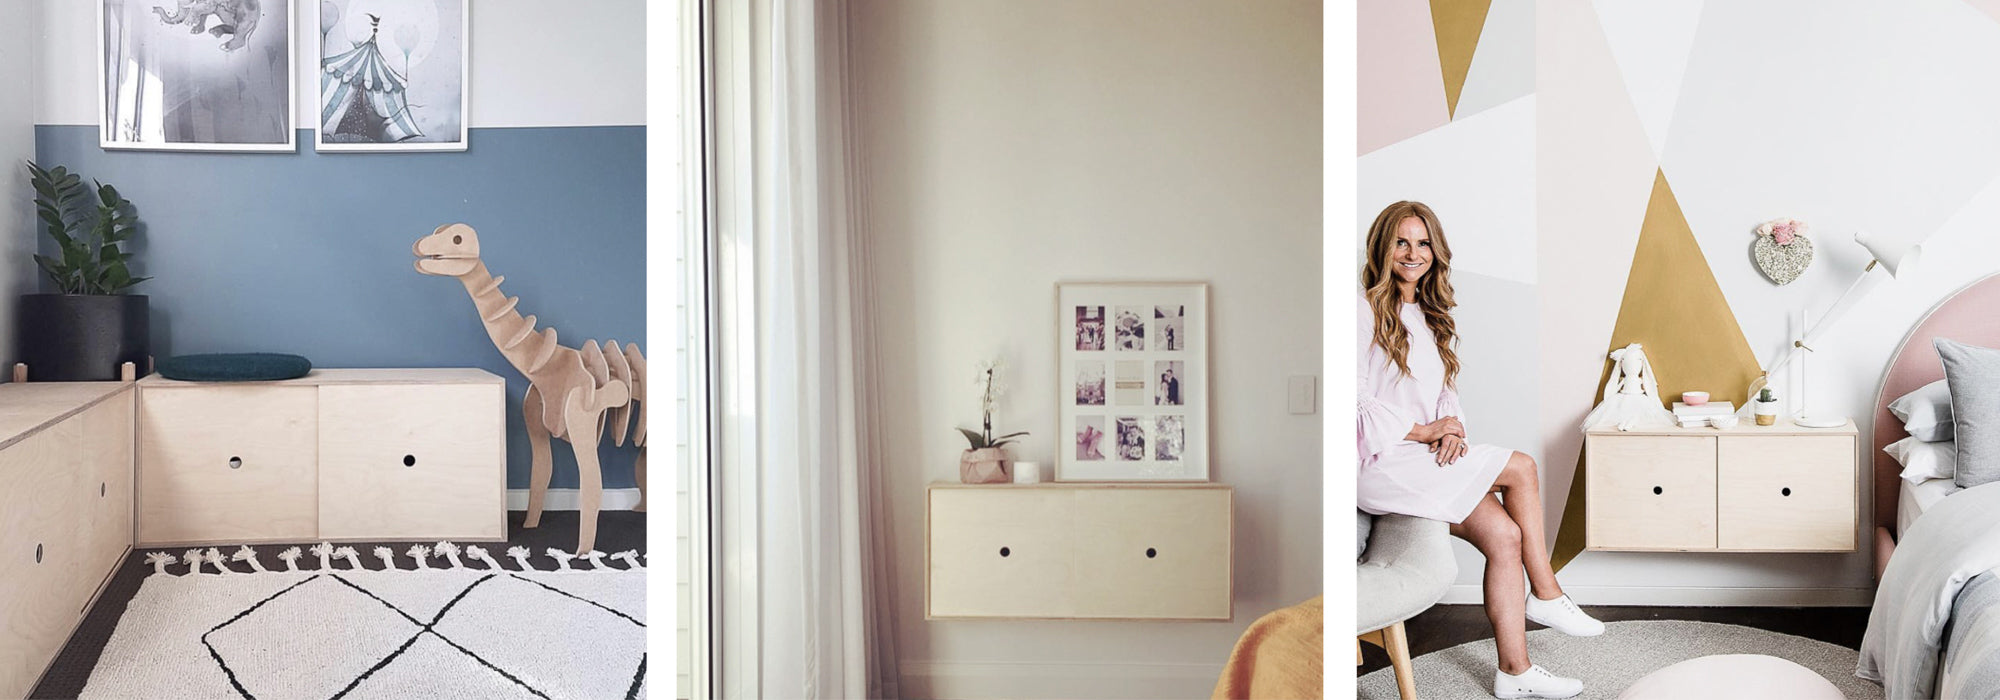 Plyroom Big Nest Storage Cabinet Modern Mid-Century Storage Made in Melbourne